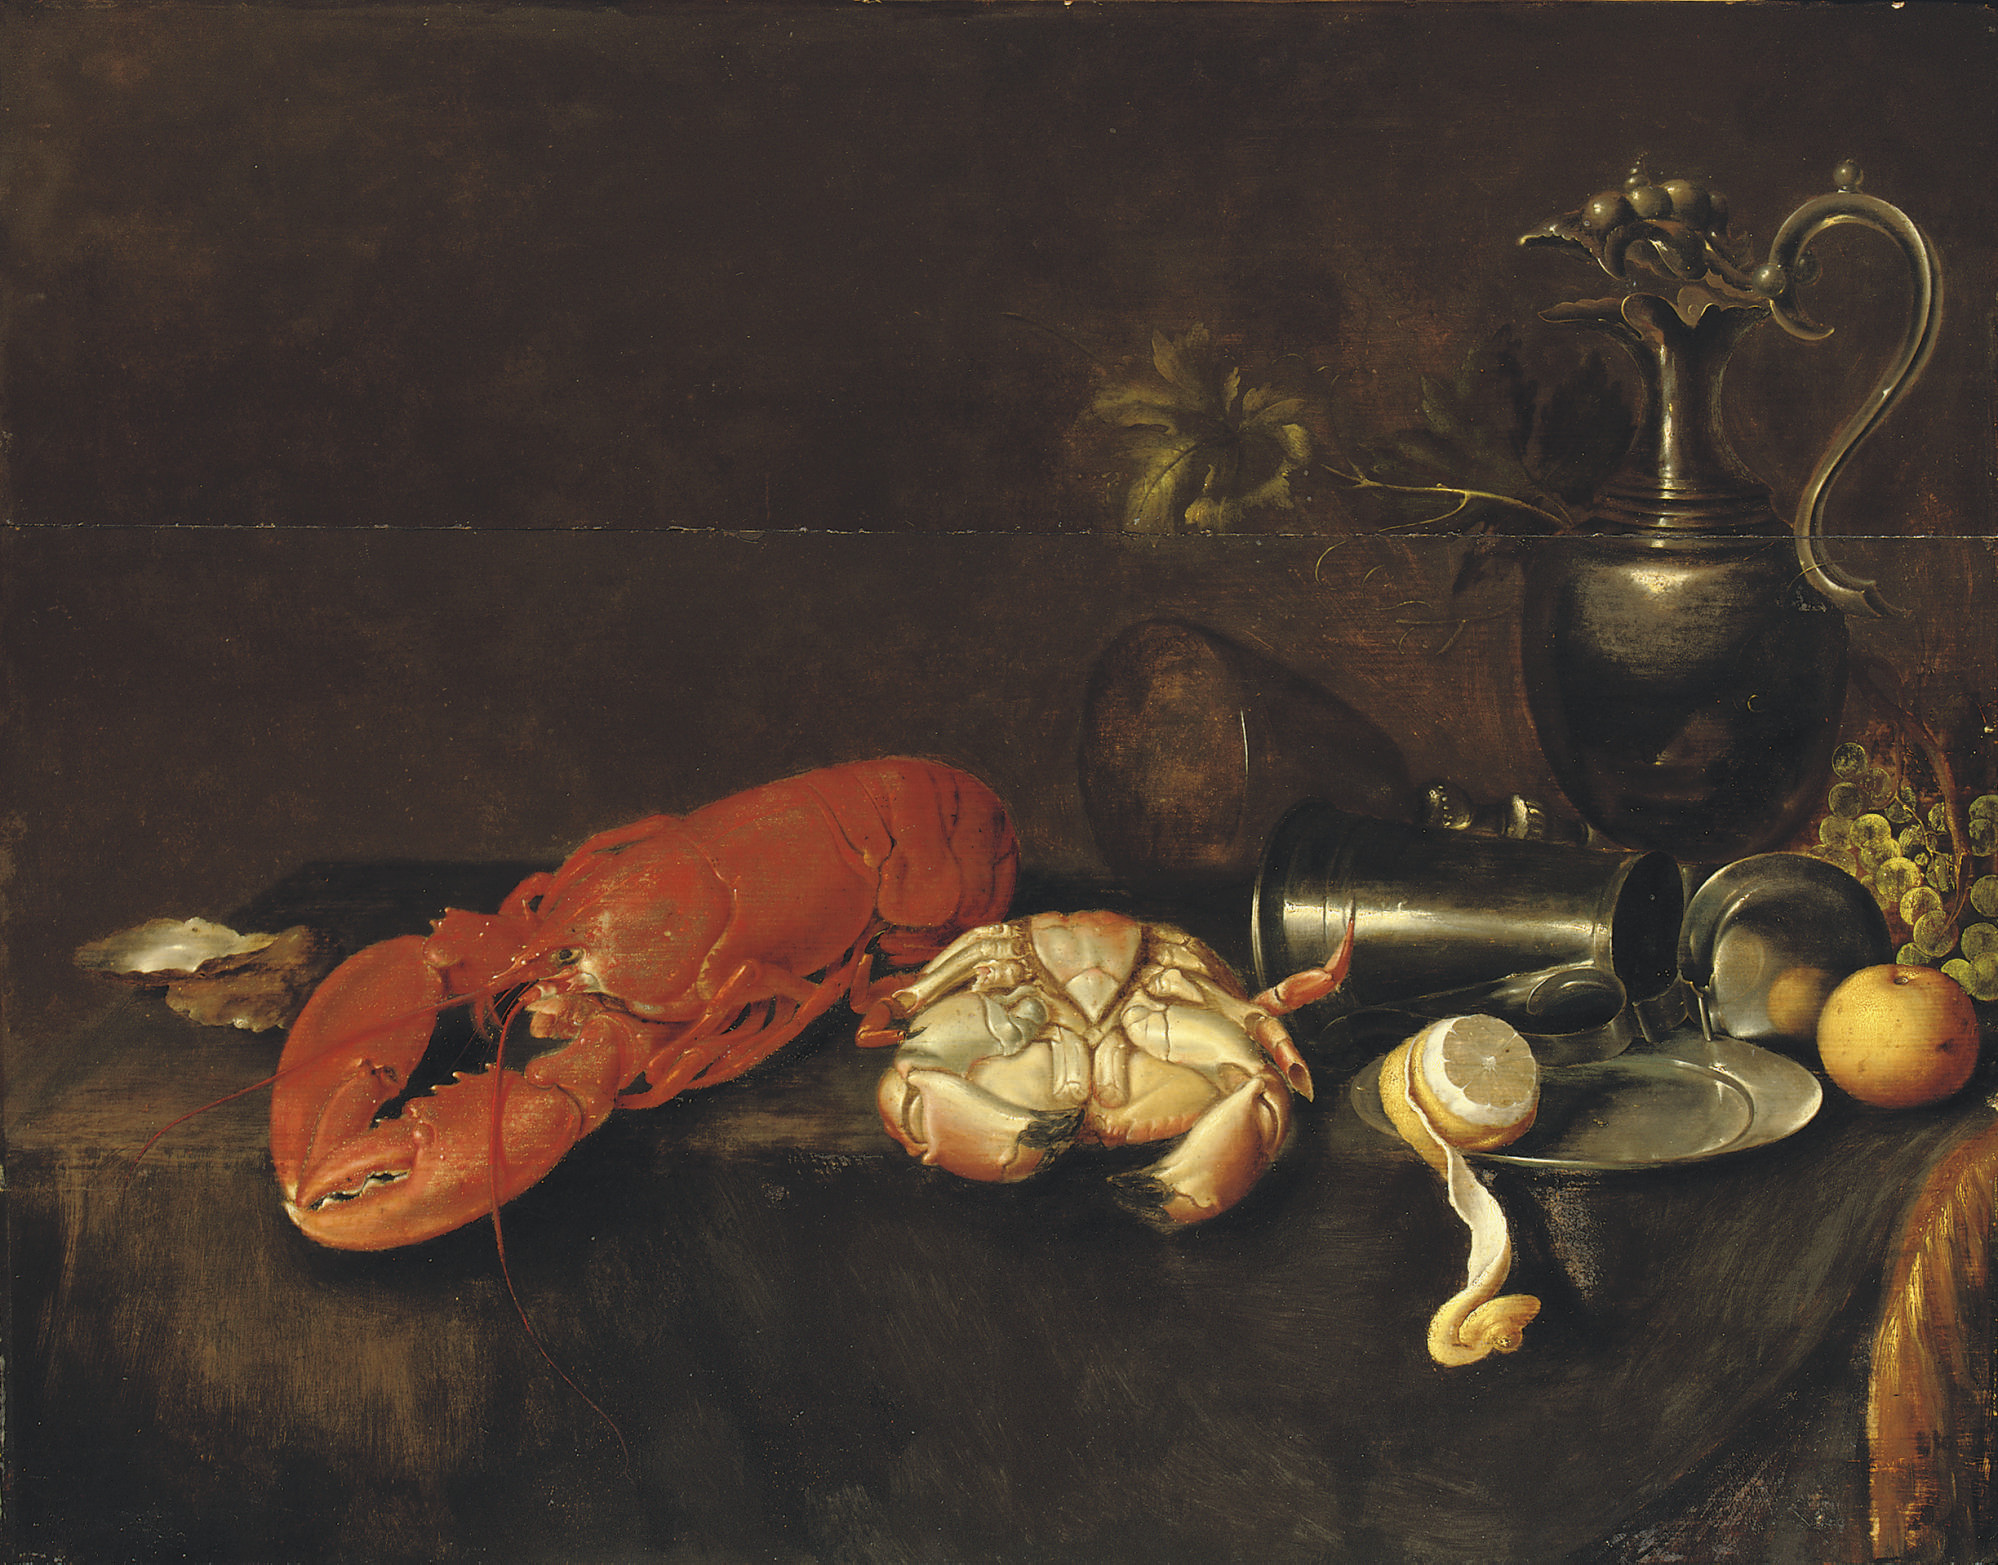 A lobster, a crab, an oyster, a pewter pitcher, a partially peeled lemon, an apple and grapes on a draped table